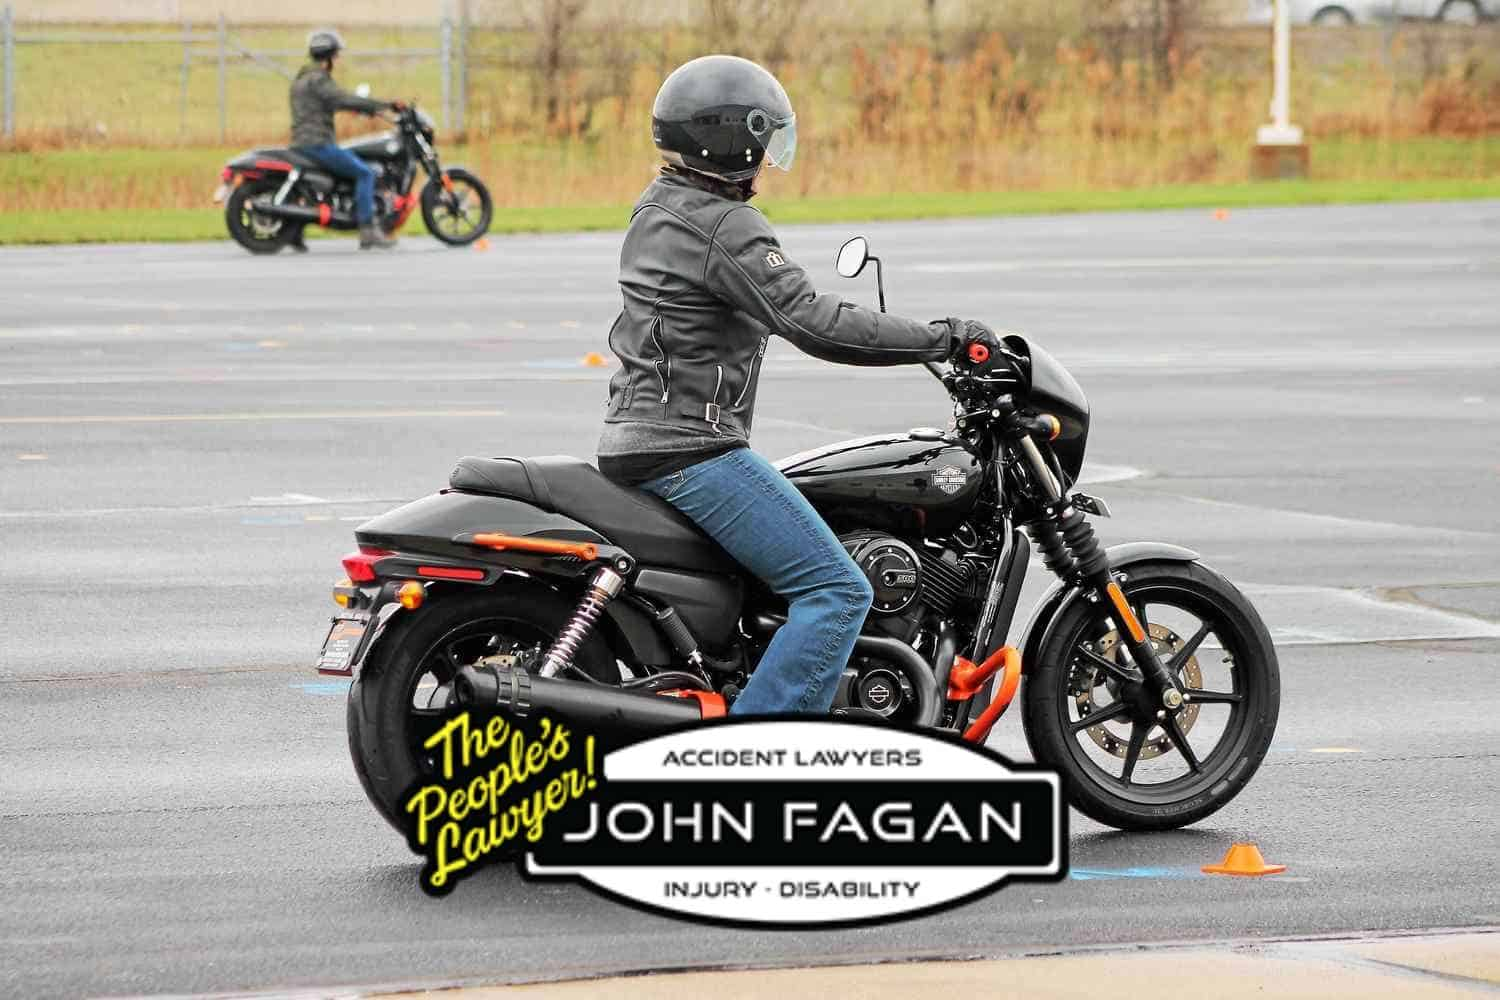 Motorcycle safety: Rainy day rides require different riding skills